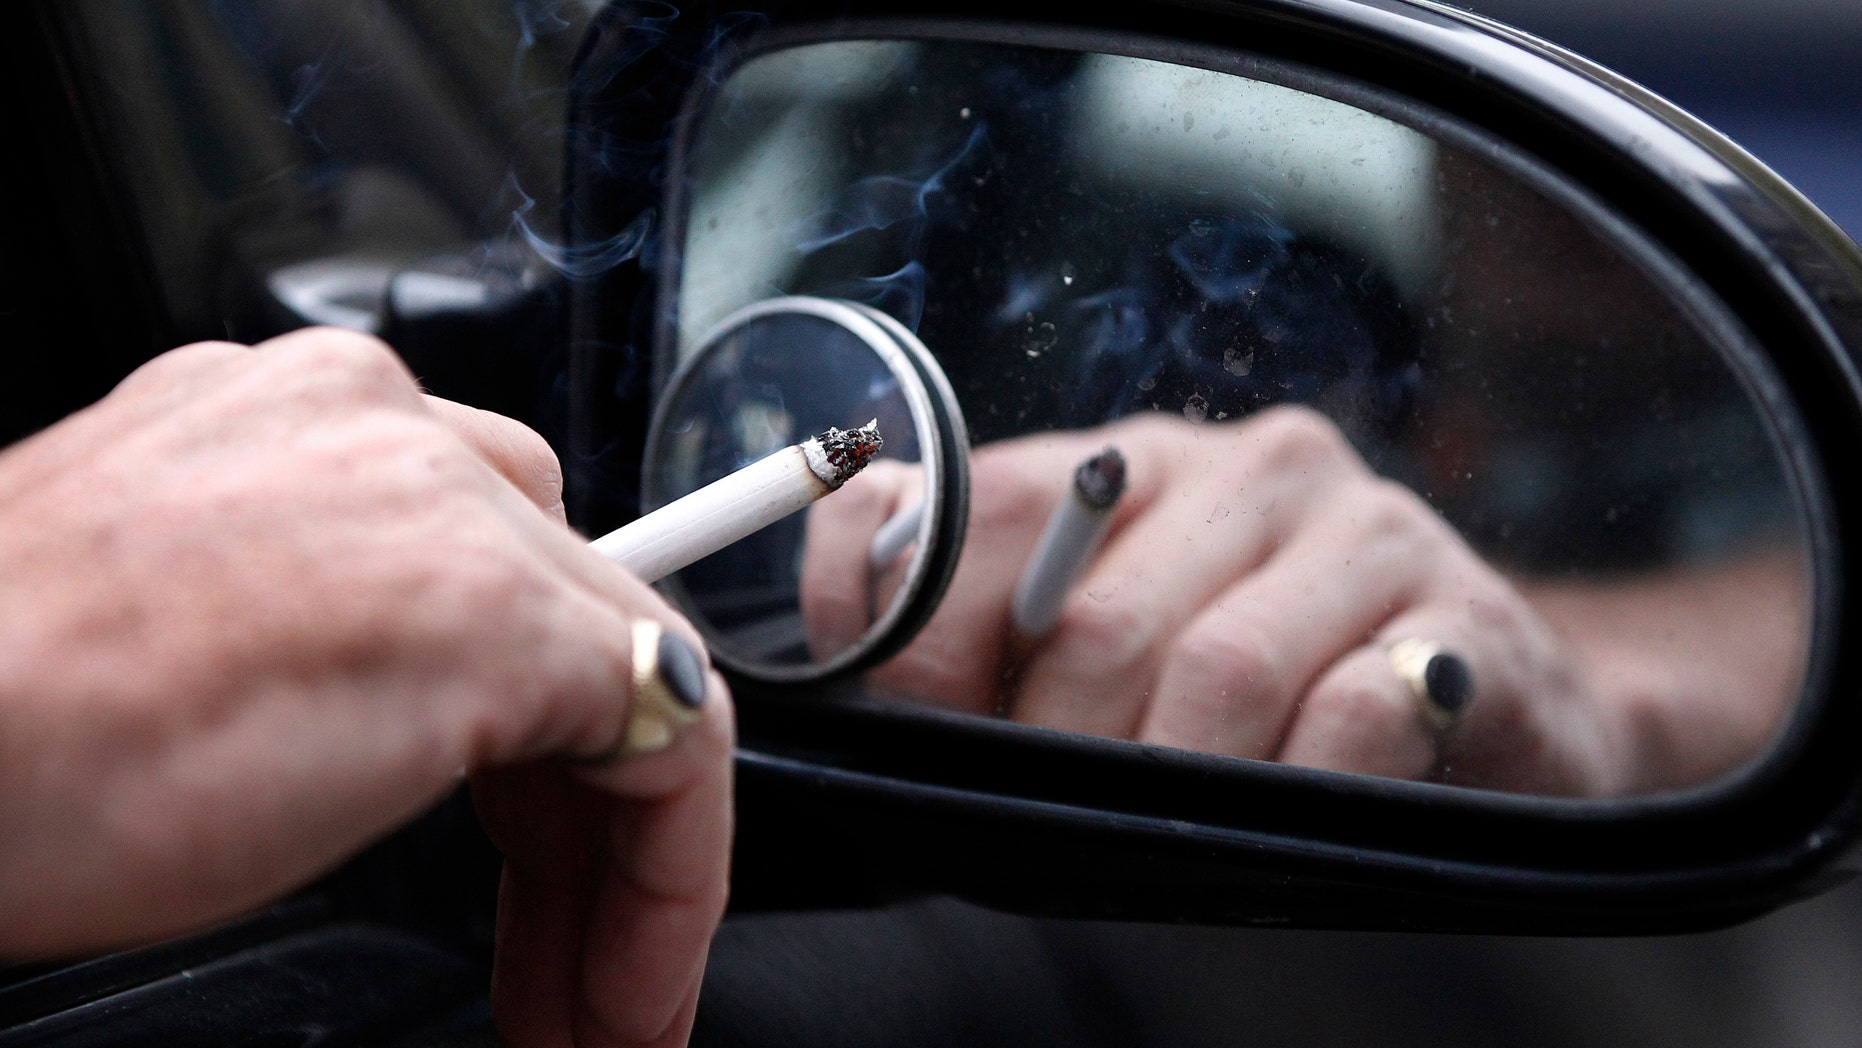 A man smokes a cigarette as he sits in his car. (REUTERS/Phil Noble)